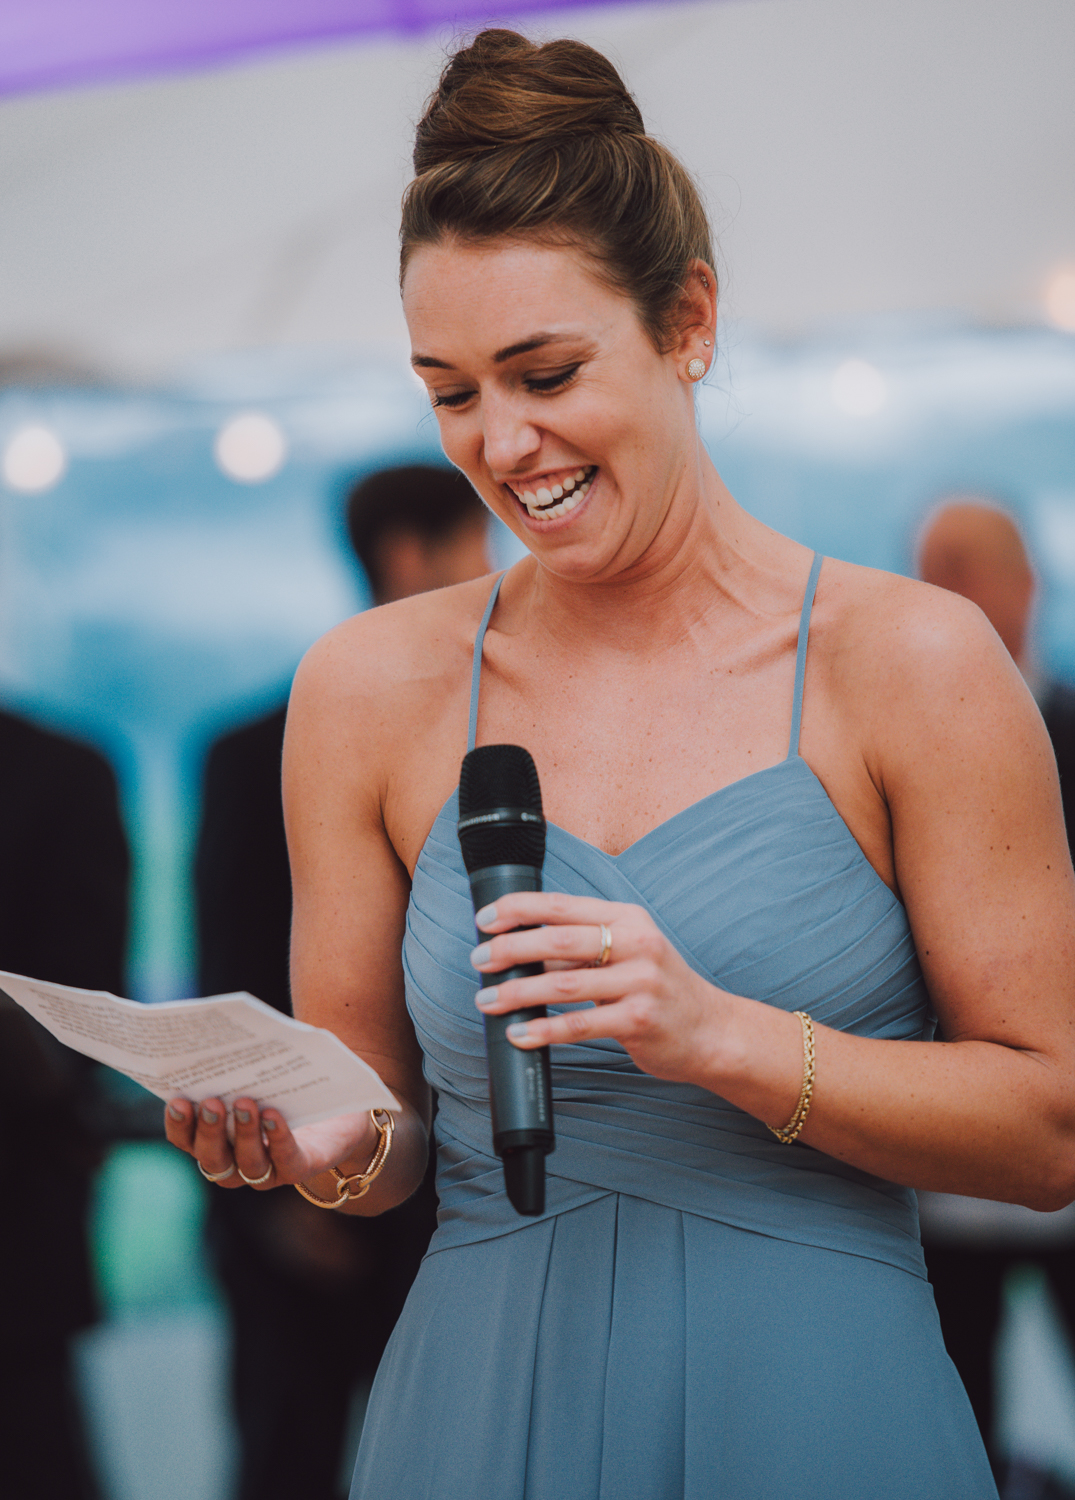 maureen_evan_wedding_maid_of_honor_toast_marthas_vineyard-0558.jpg